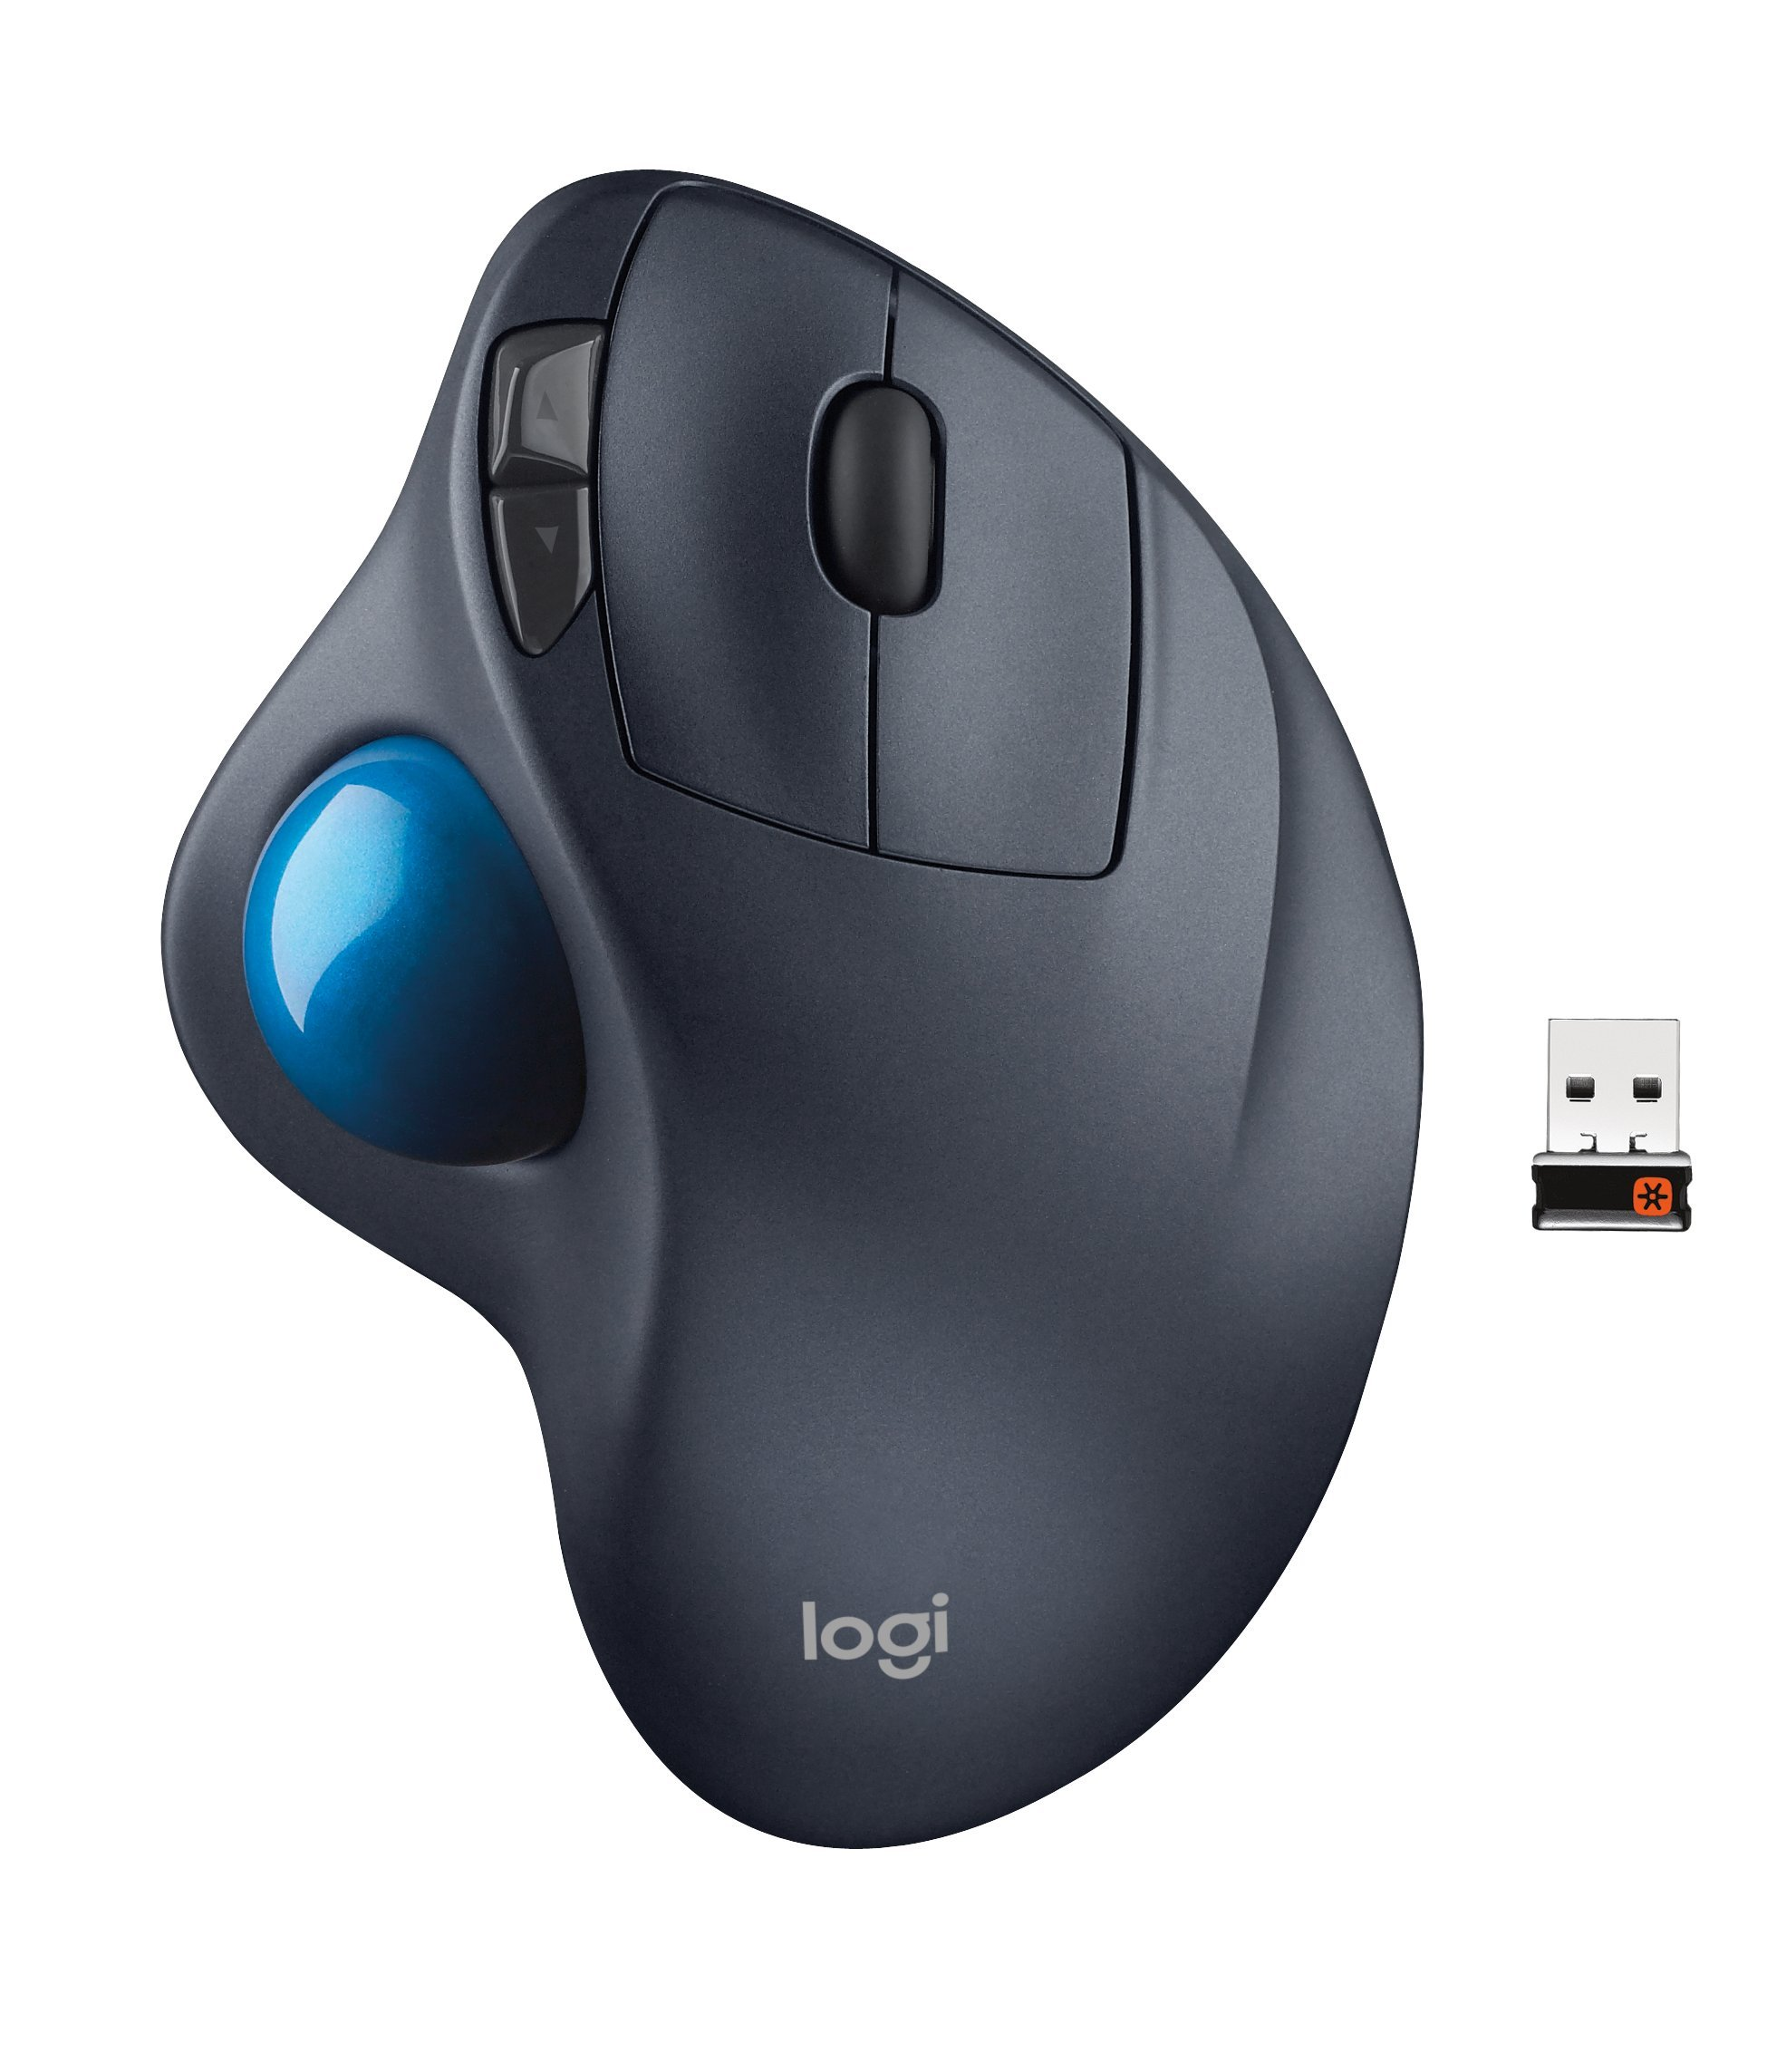 Logitech M570 Wireless Trackball Mouse - Ergonomic Design with Sculpted Right-hand Shape, Compatible with Apple Mac and Microsoft Windows Computers, USB Unifying Receiver, Dark Gray by Logitech